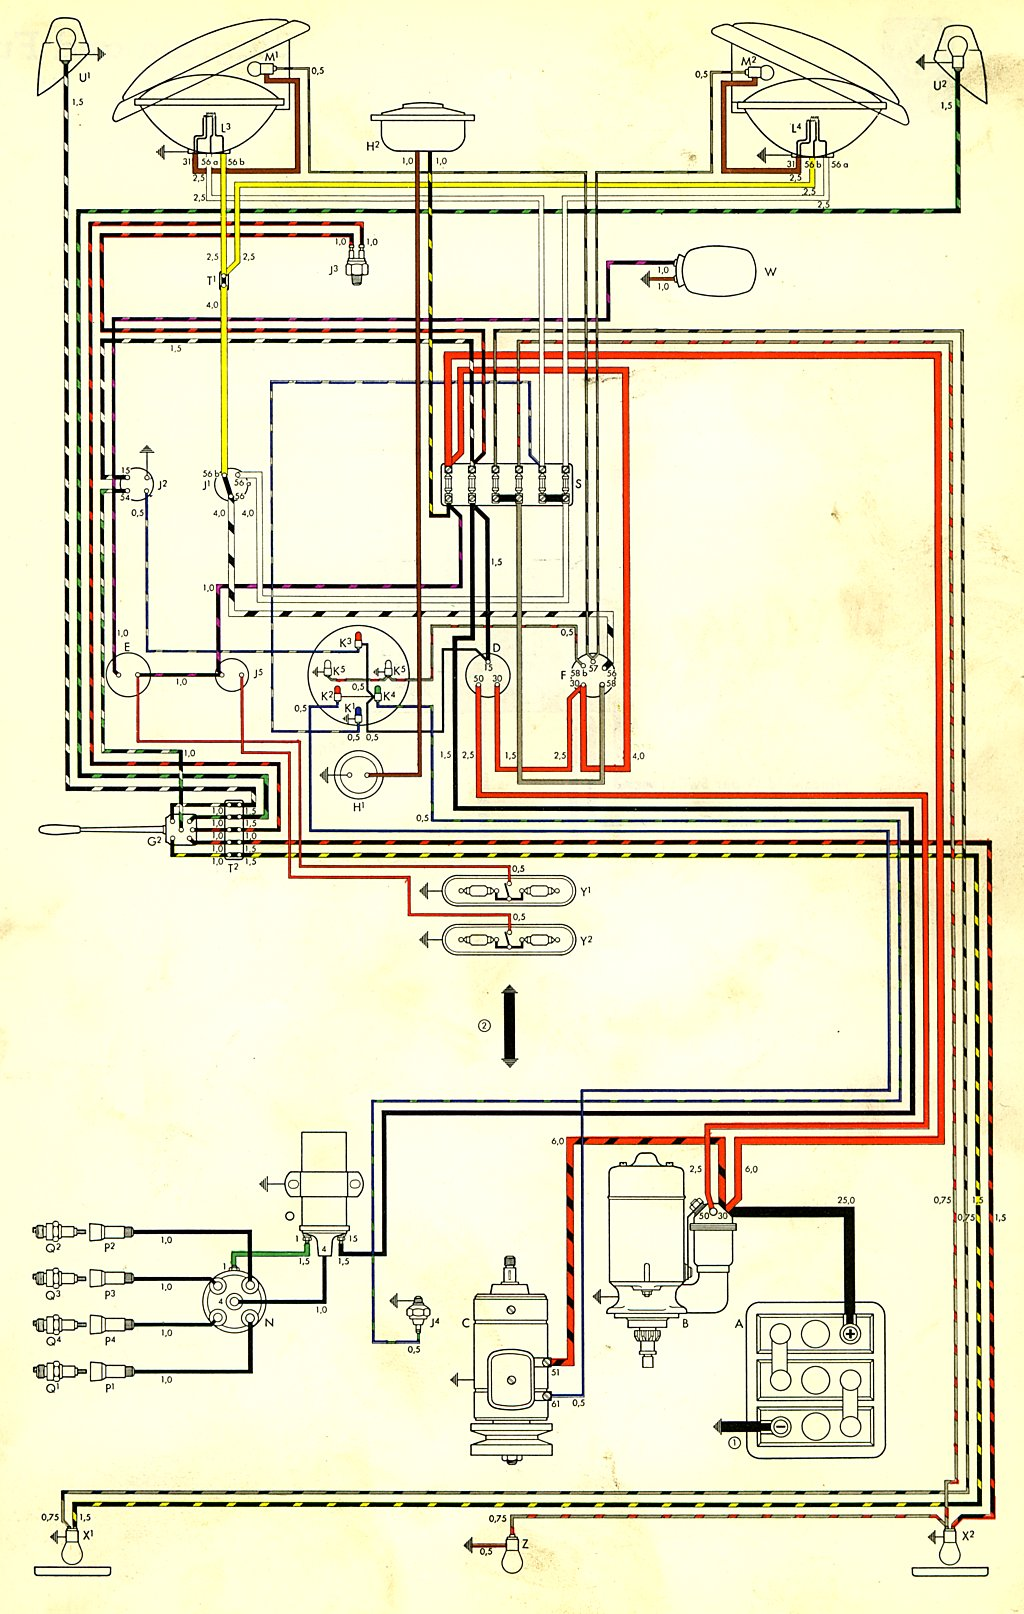 thesamba com type 2 wiring diagrams rh thesamba com 1973 VW Wiring Diagram 1973 VW Wiring Diagram